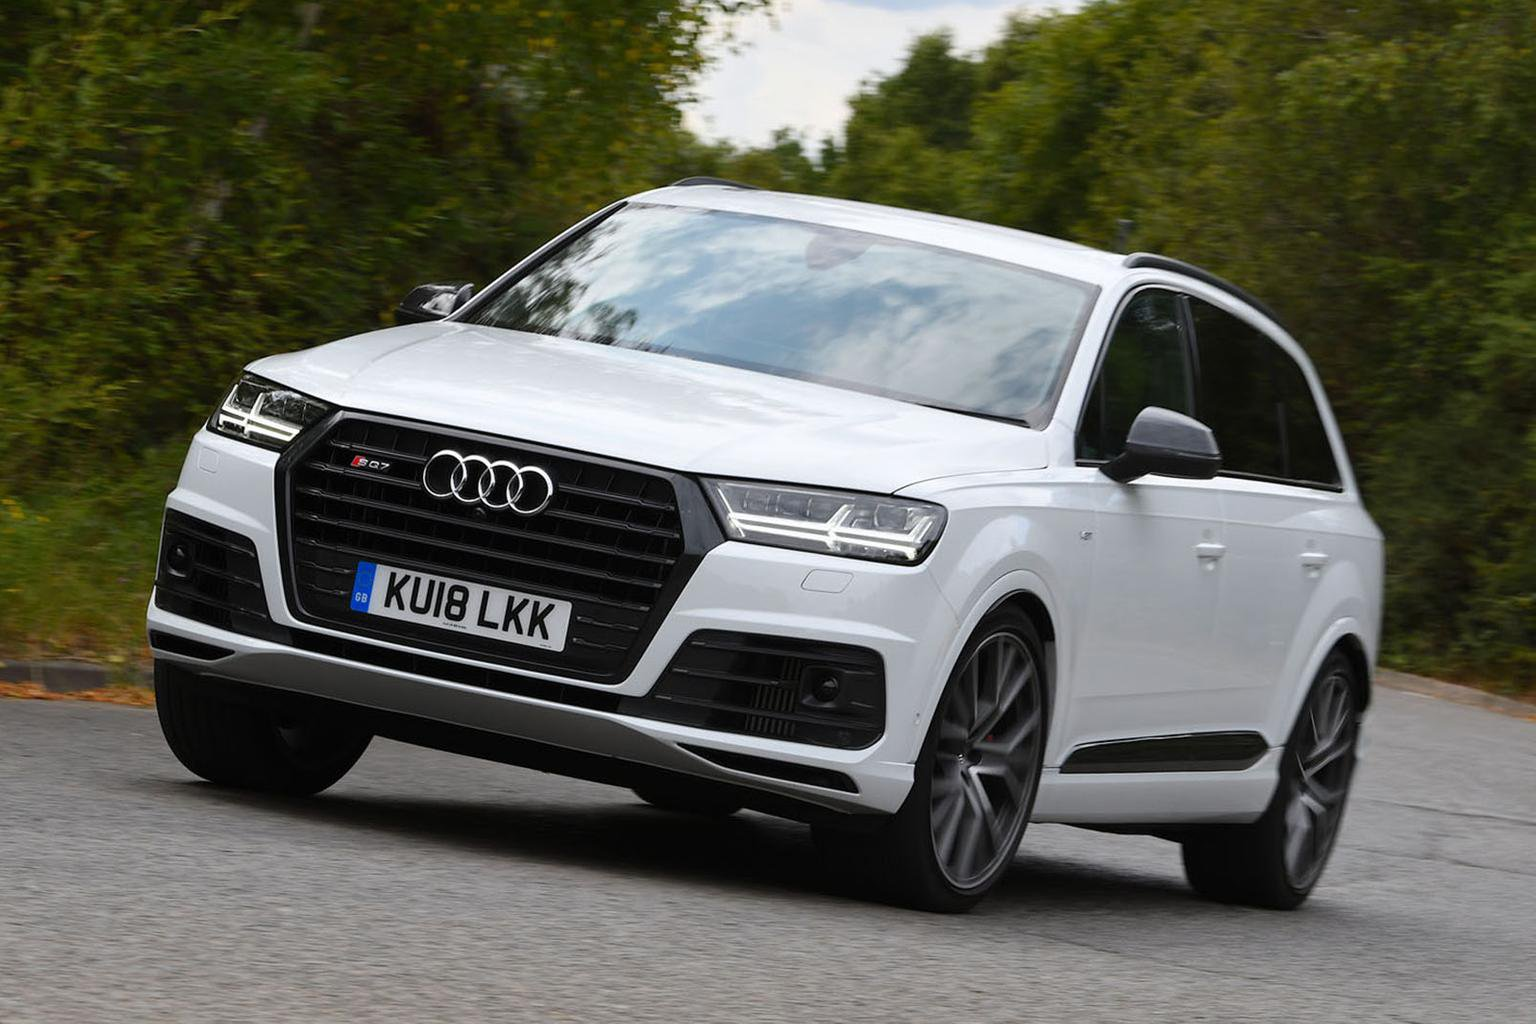 2018 Audi Sq7 Vorsprung Review Price Specs And Release Date